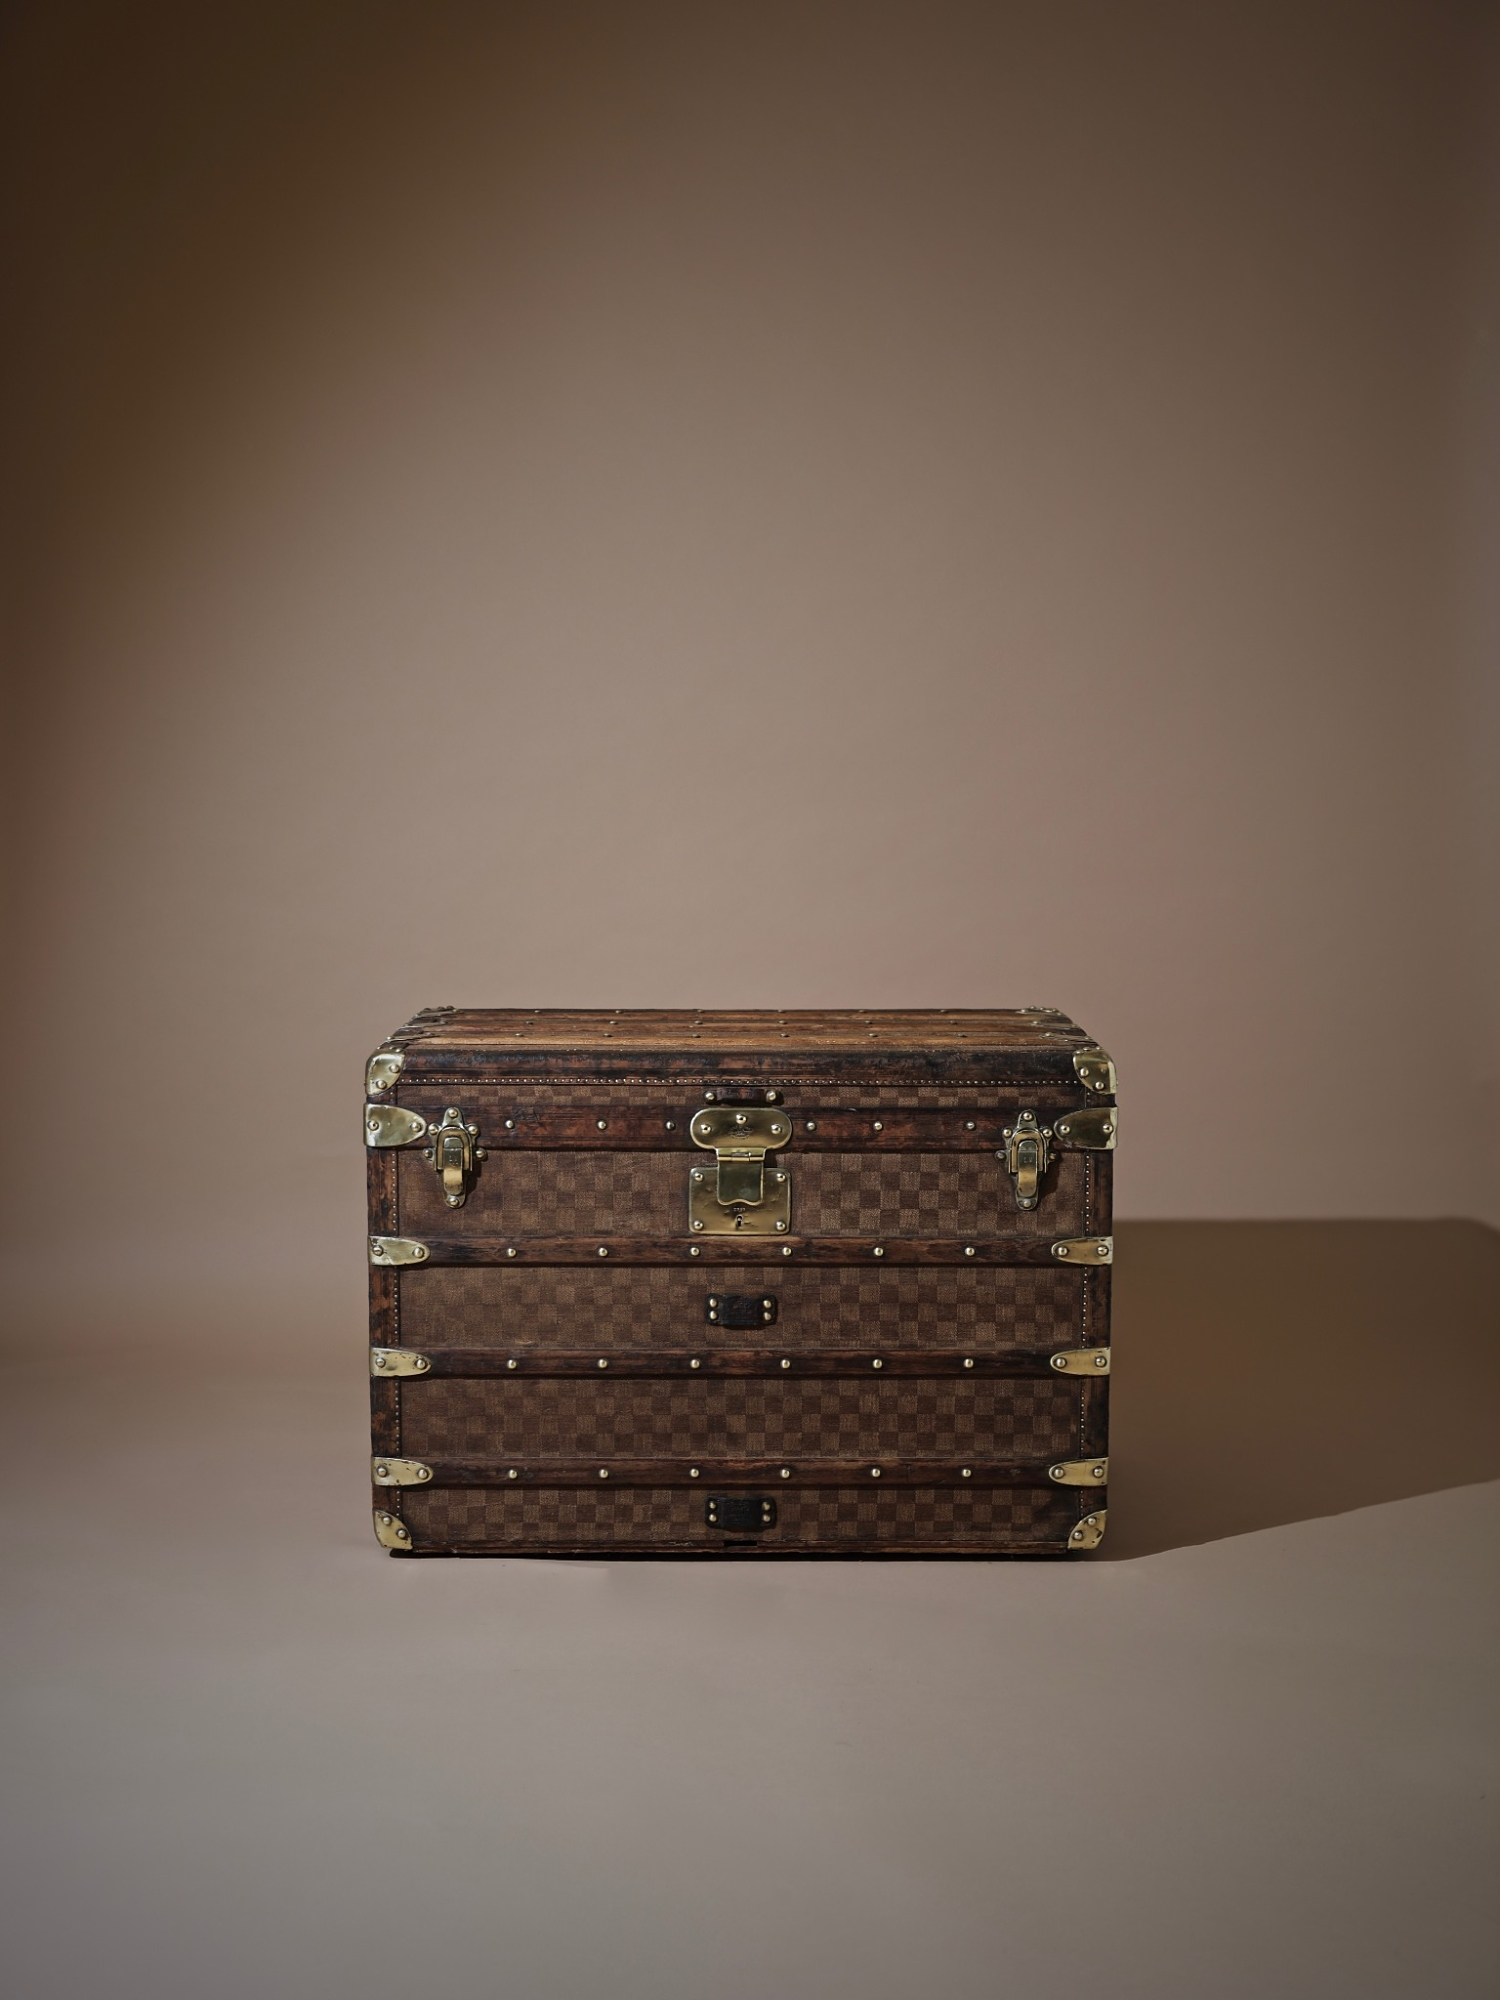 the-well-traveled-trunk-louis-vuitton-thumbnail-product-5718A-1